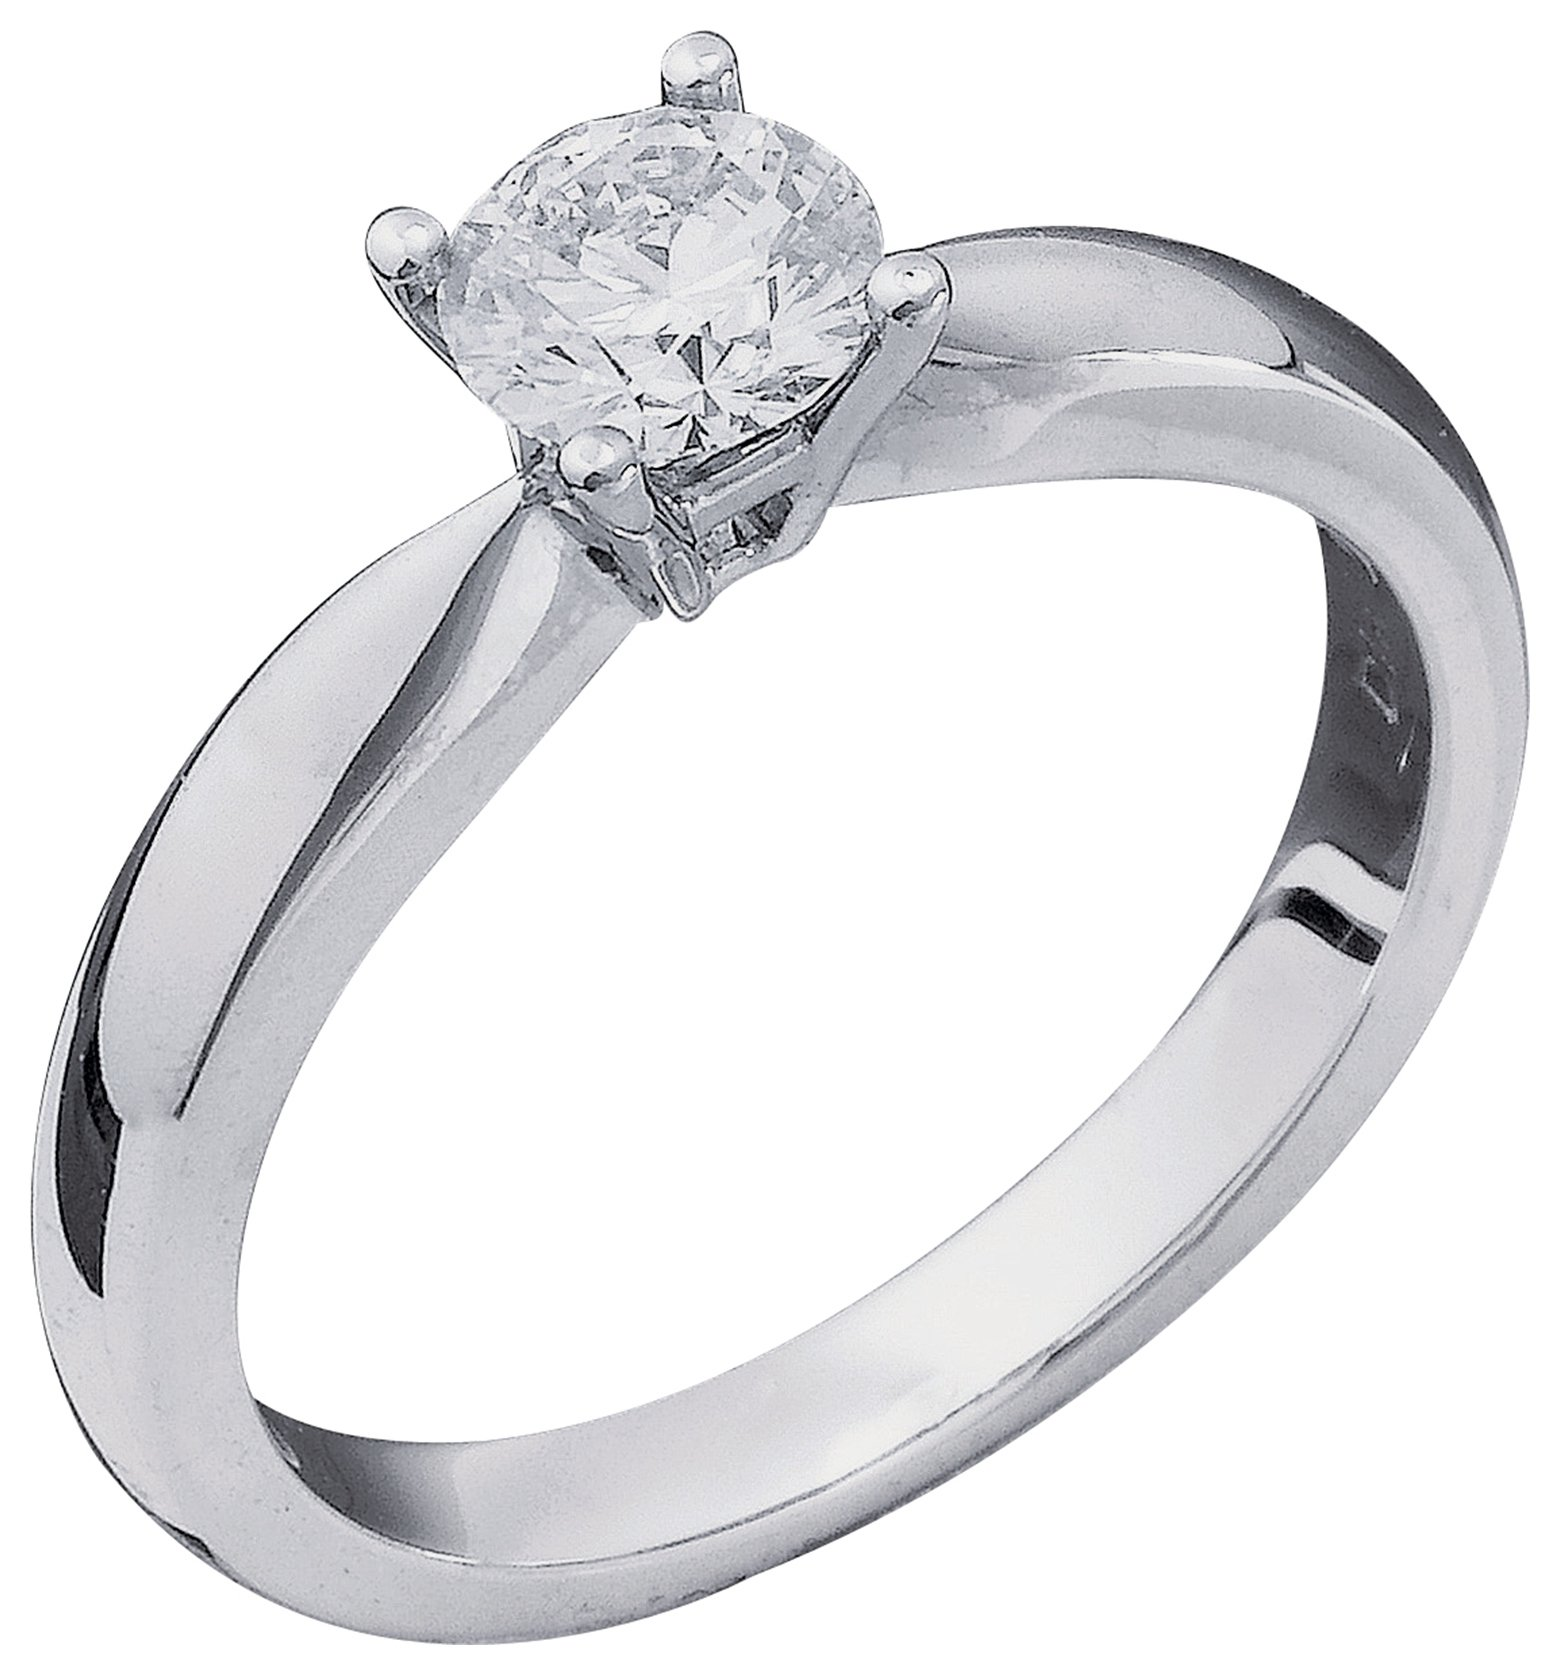 Everlasting Love 18 Carat W Gold 1/2ct Diamond Solitaire Ring - Size V